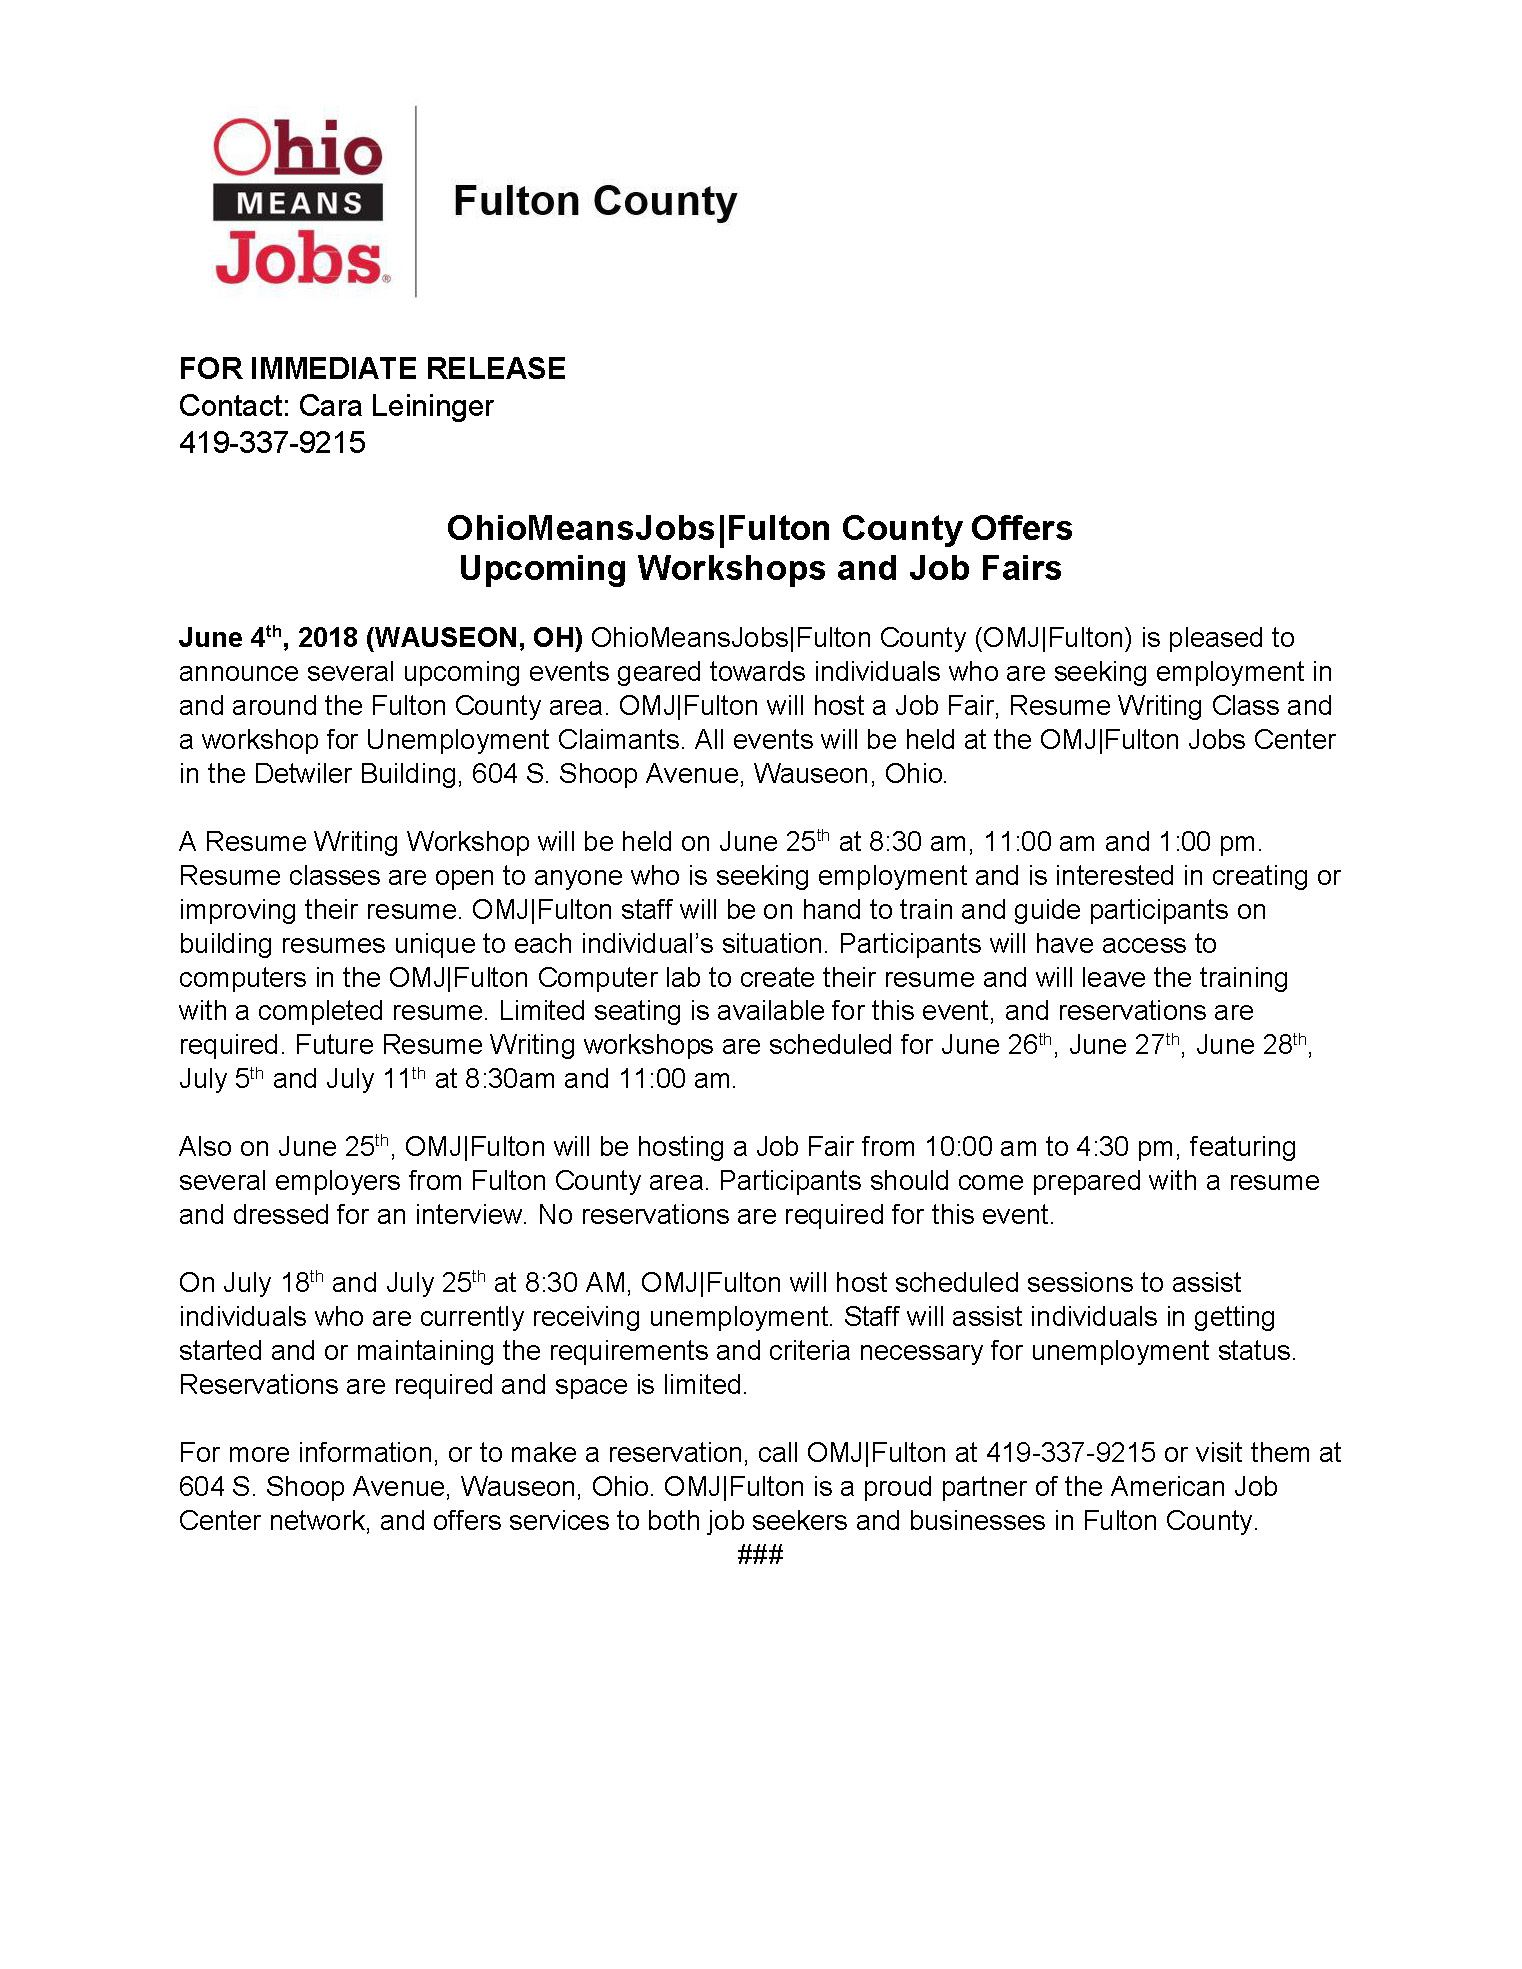 OhioMeansJobs|Fulton Resume Writing and Workshops Press Release